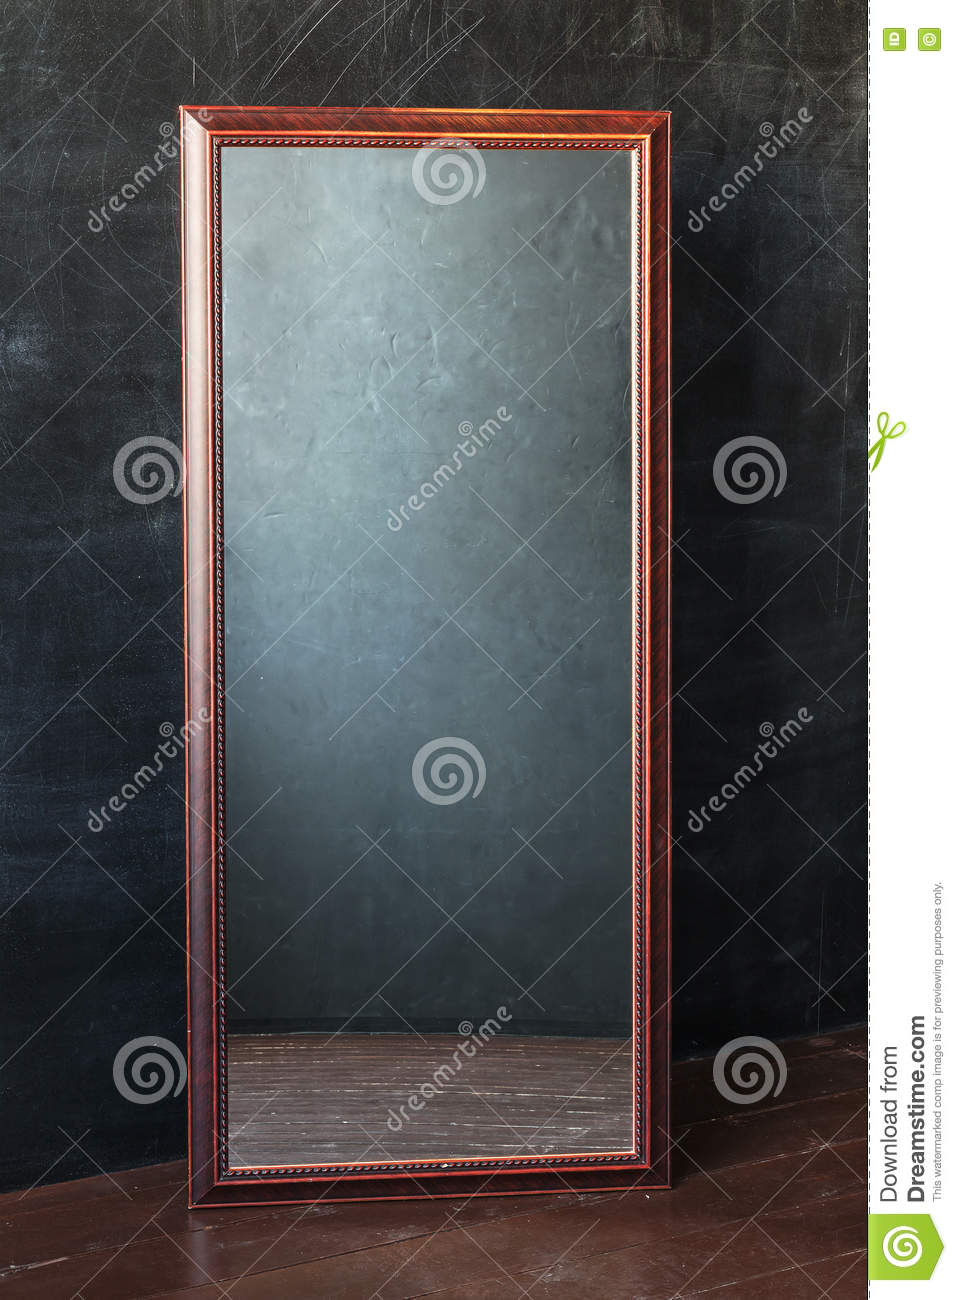 Classic rectangular mirror withot reflection standing In the empty room with black wall.